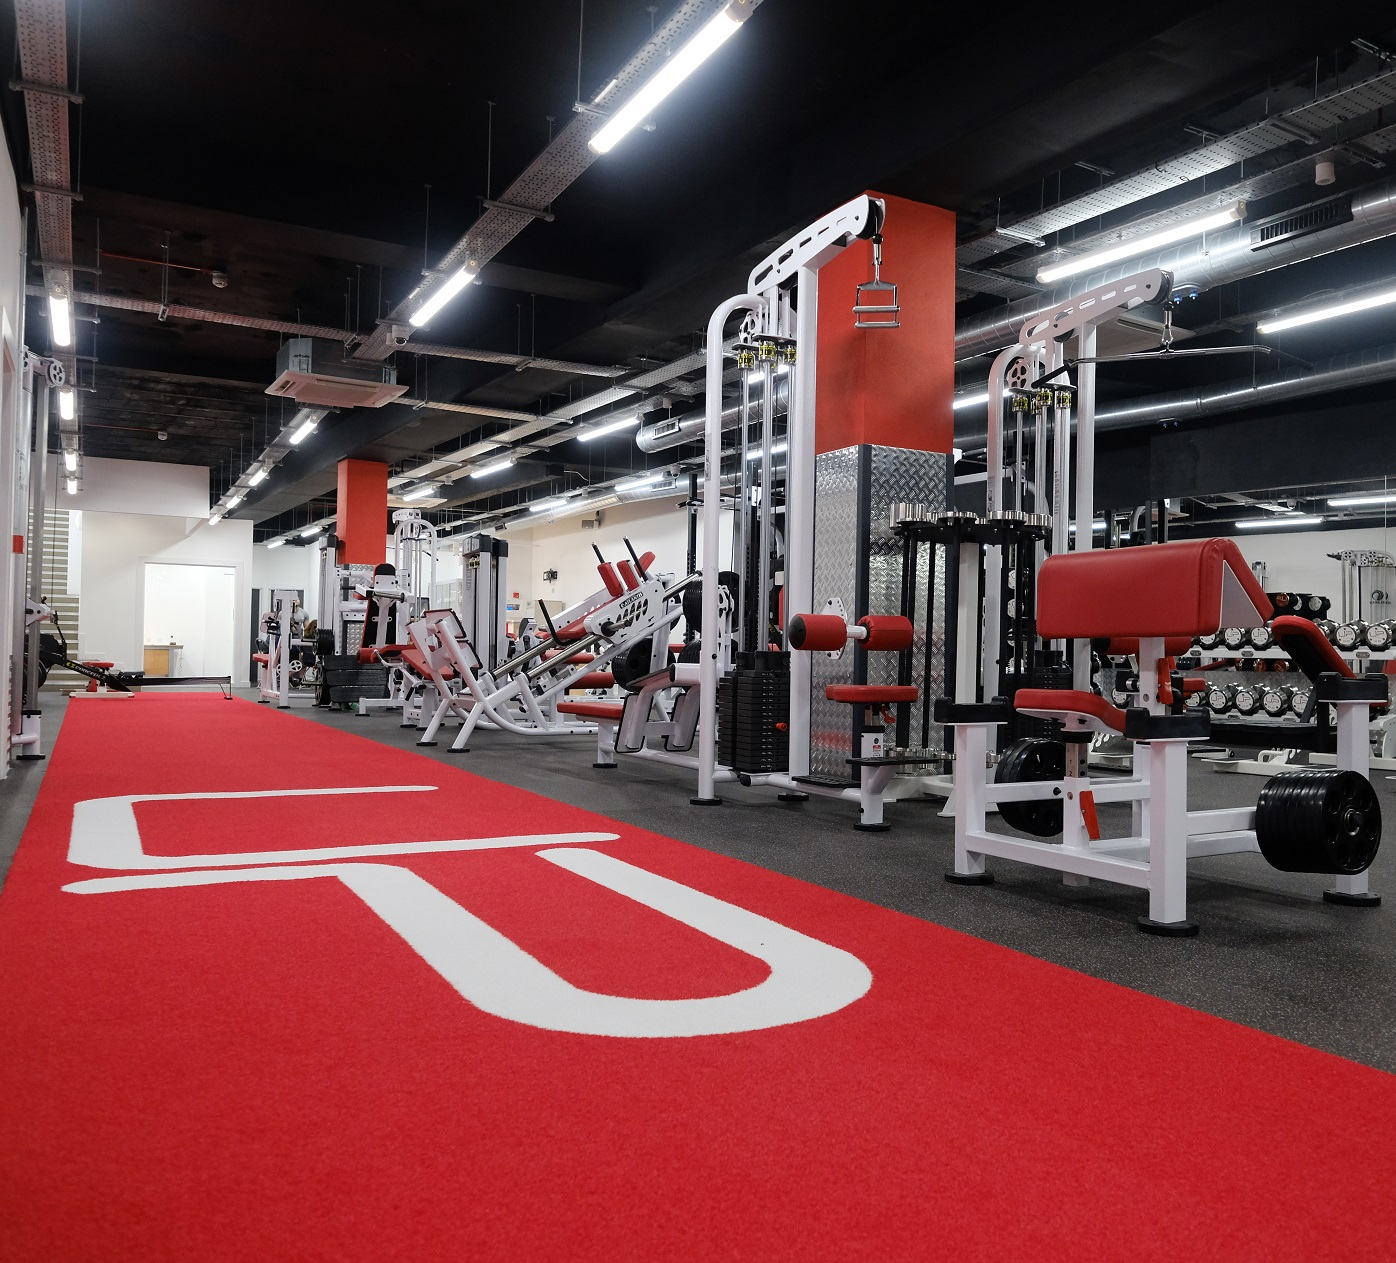 https://assets.upfitness.com/uploads/custom_image_header/mobile_image/26/kensington_mobile_banner.jpg